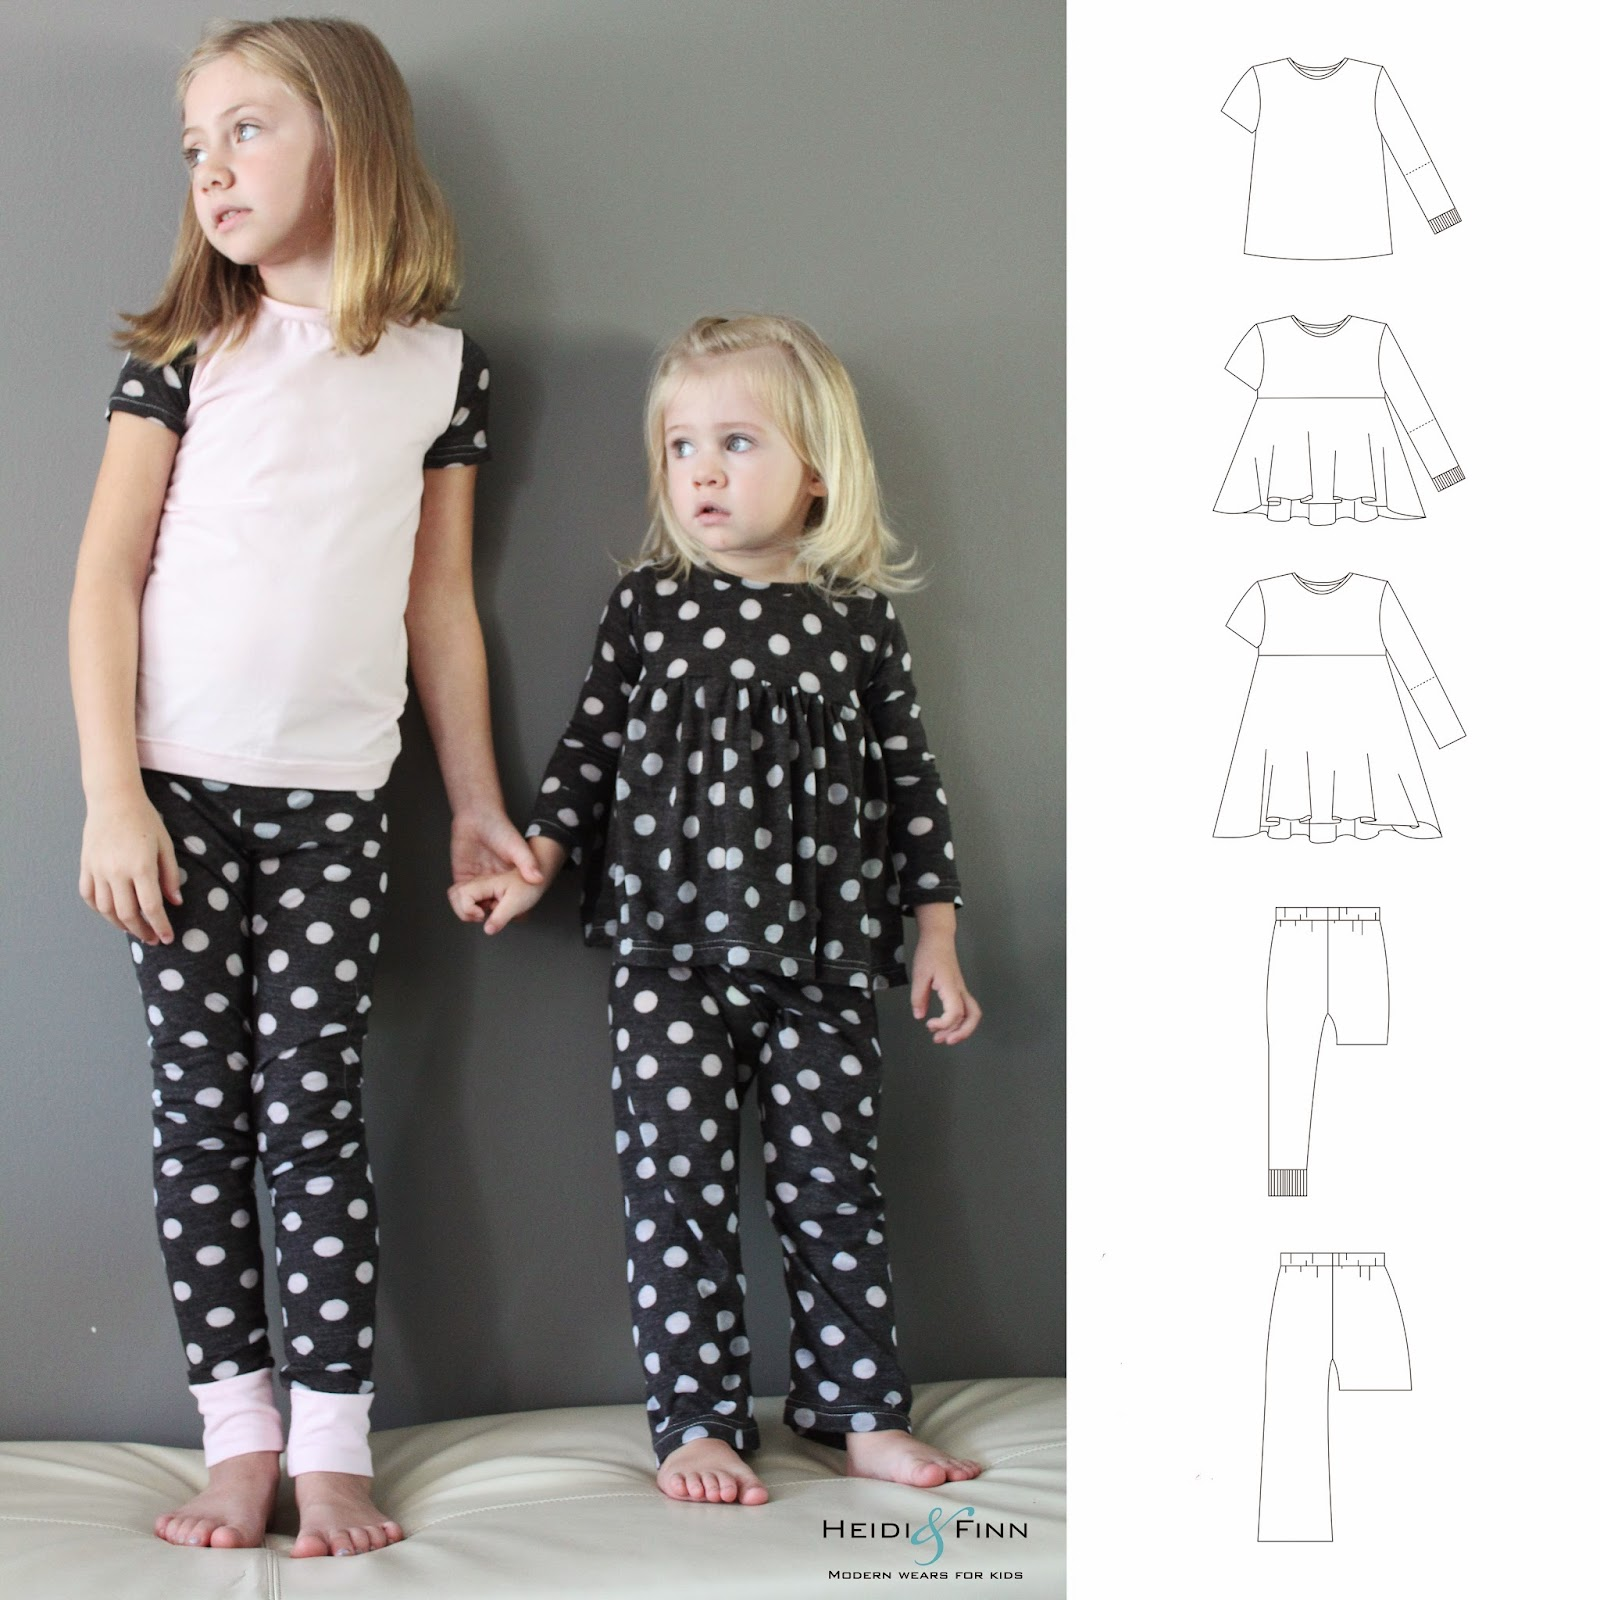 https://www.etsy.com/listing/203002210/new-all-you-need-jammies-pajamas-pattern?ref=shop_home_feat_3